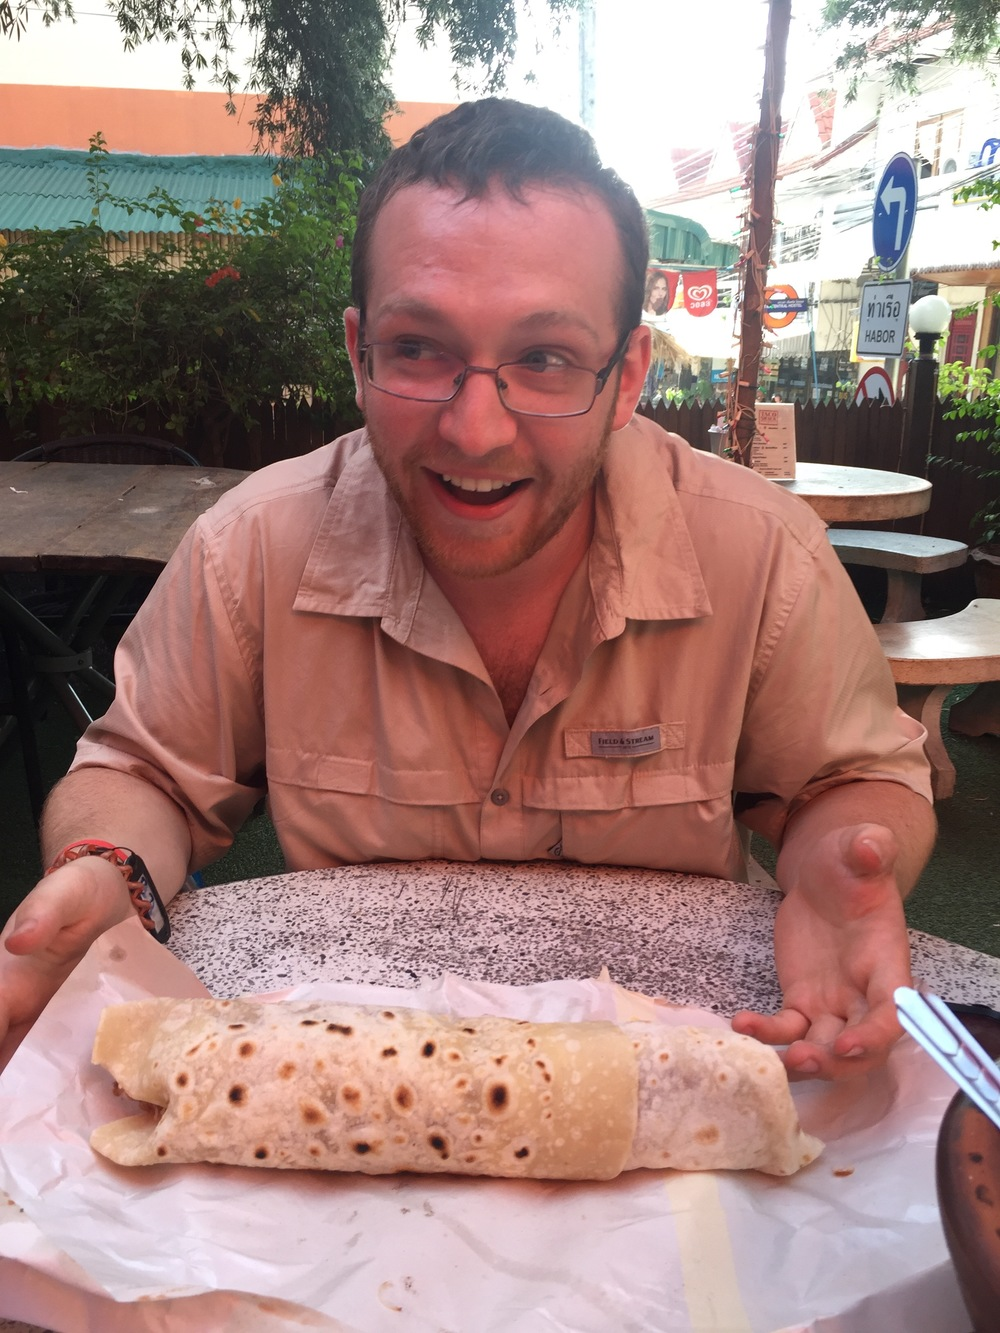 Taco Shack's Mega Burrito. We couldn't believe it was this large.